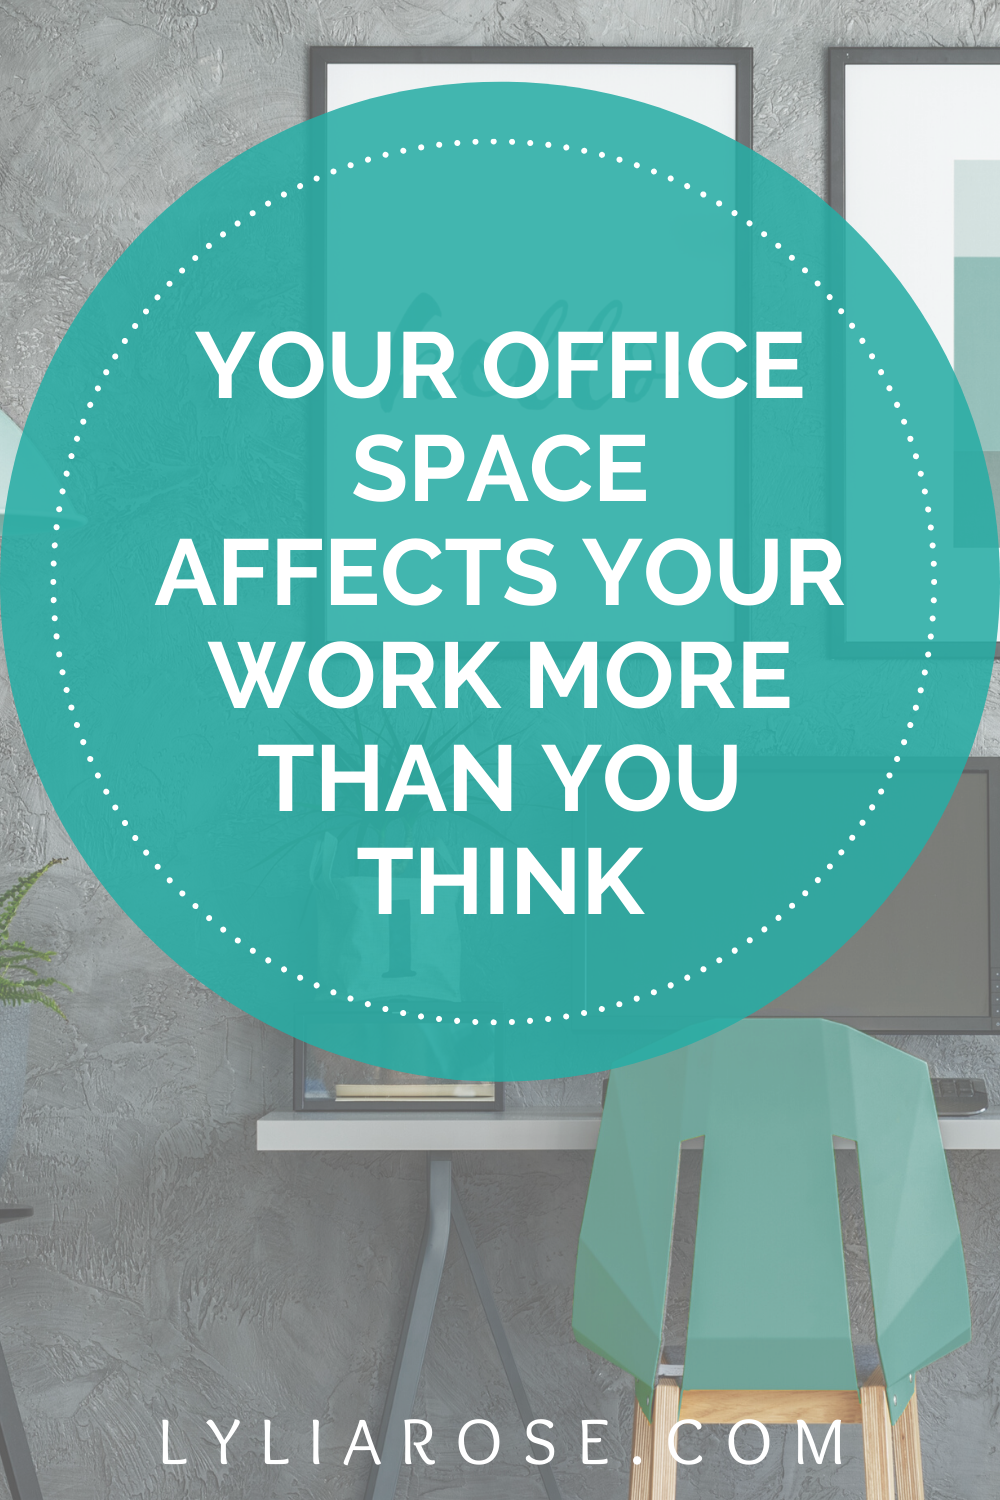 Your office space affects your work more than you think (1)